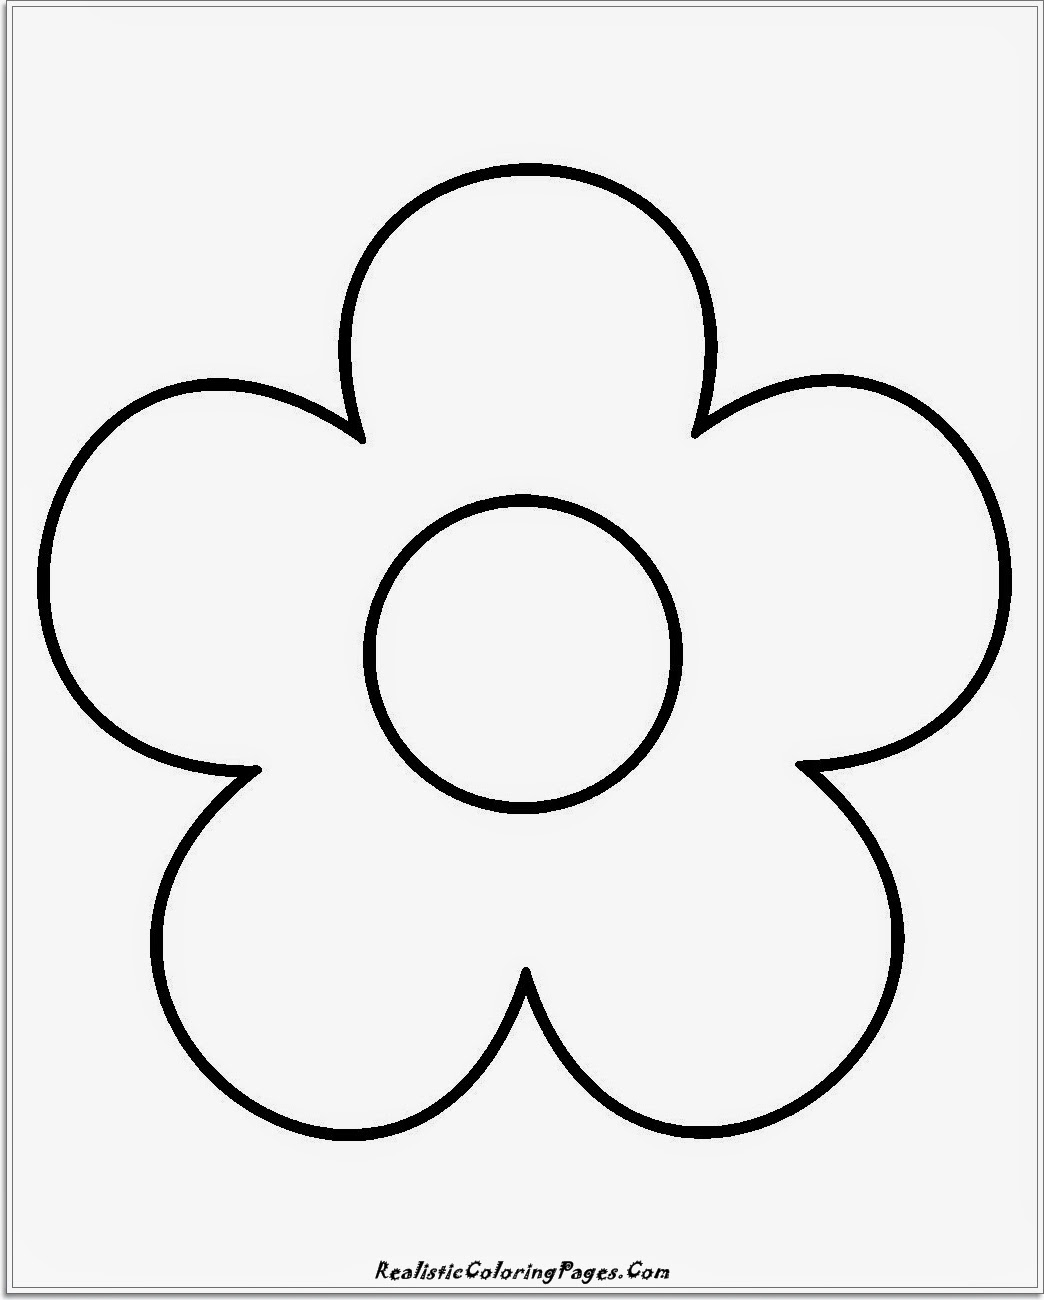 simple coloring pages - 14 simple nature coloring pages